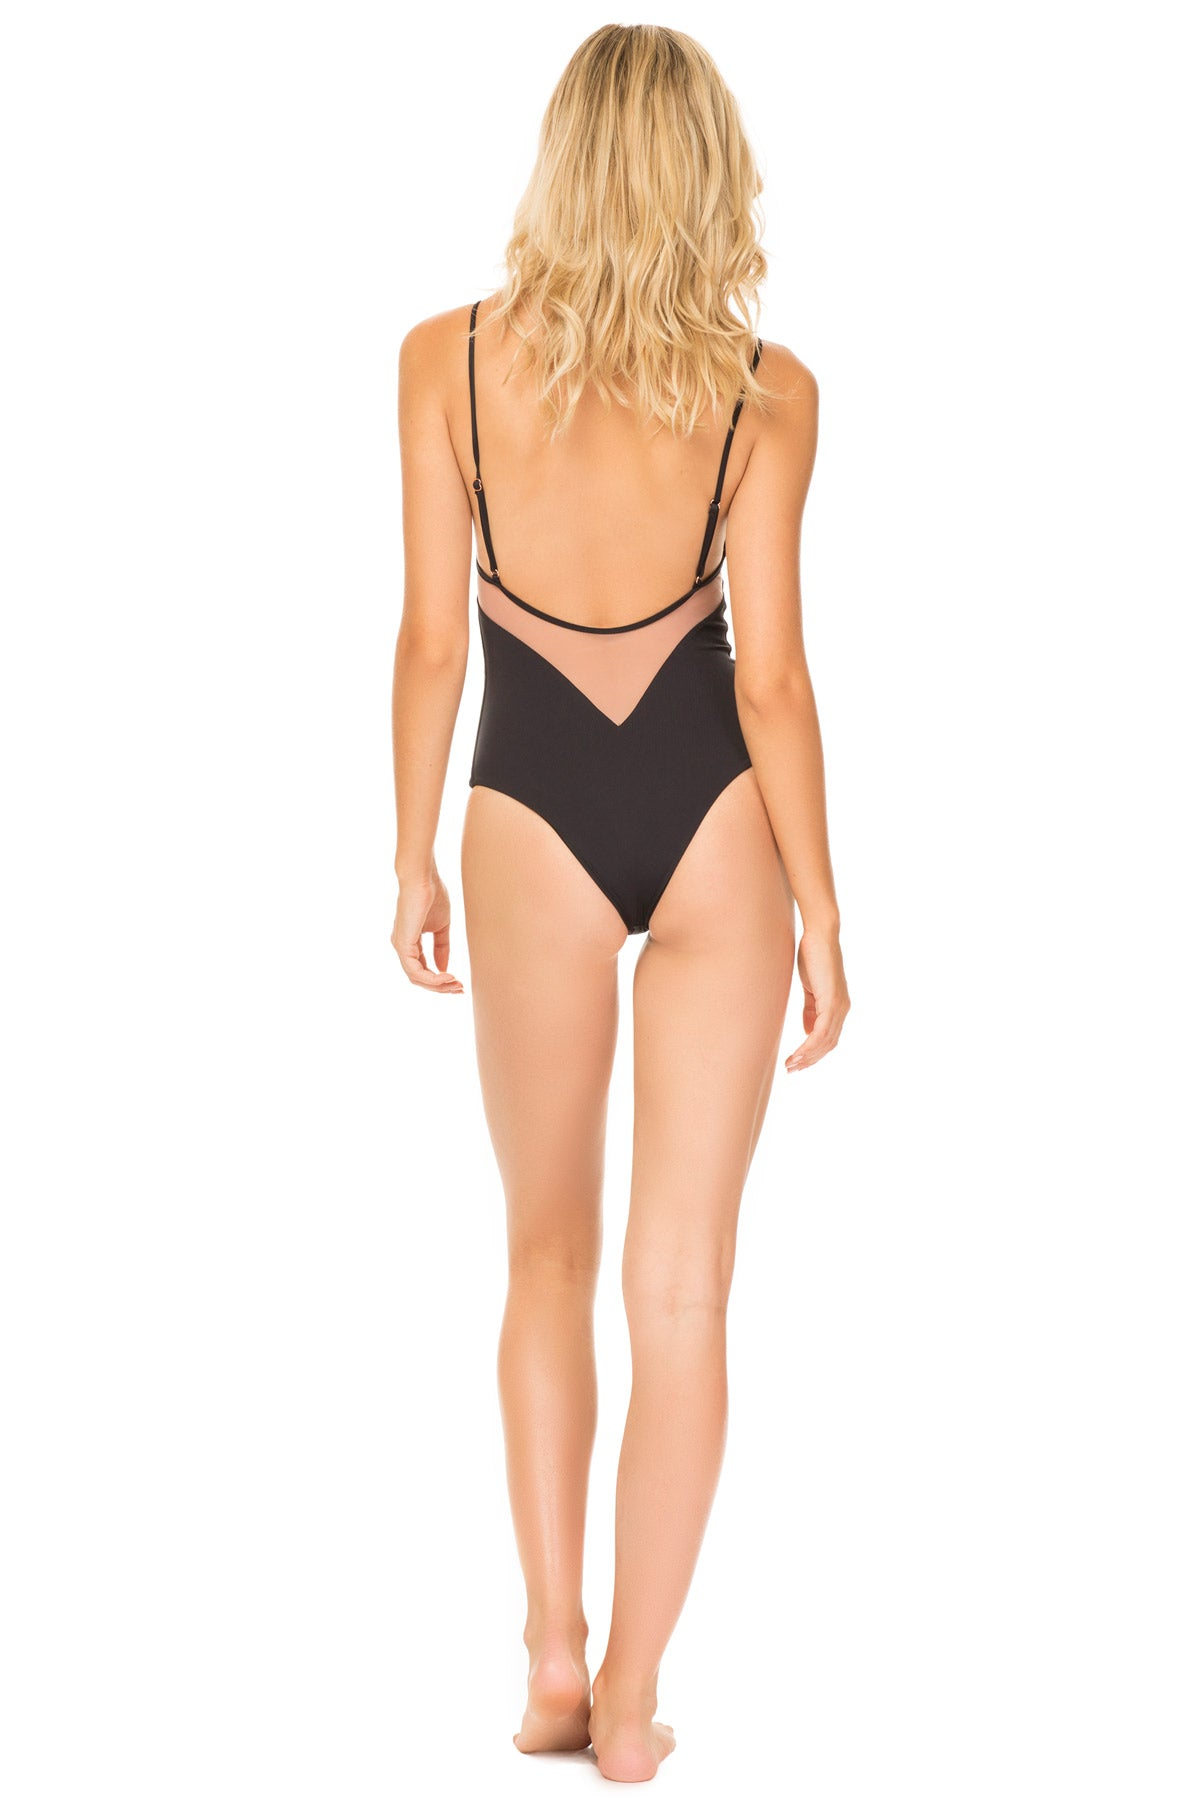 Tori Praver Lulu One Piece - Black